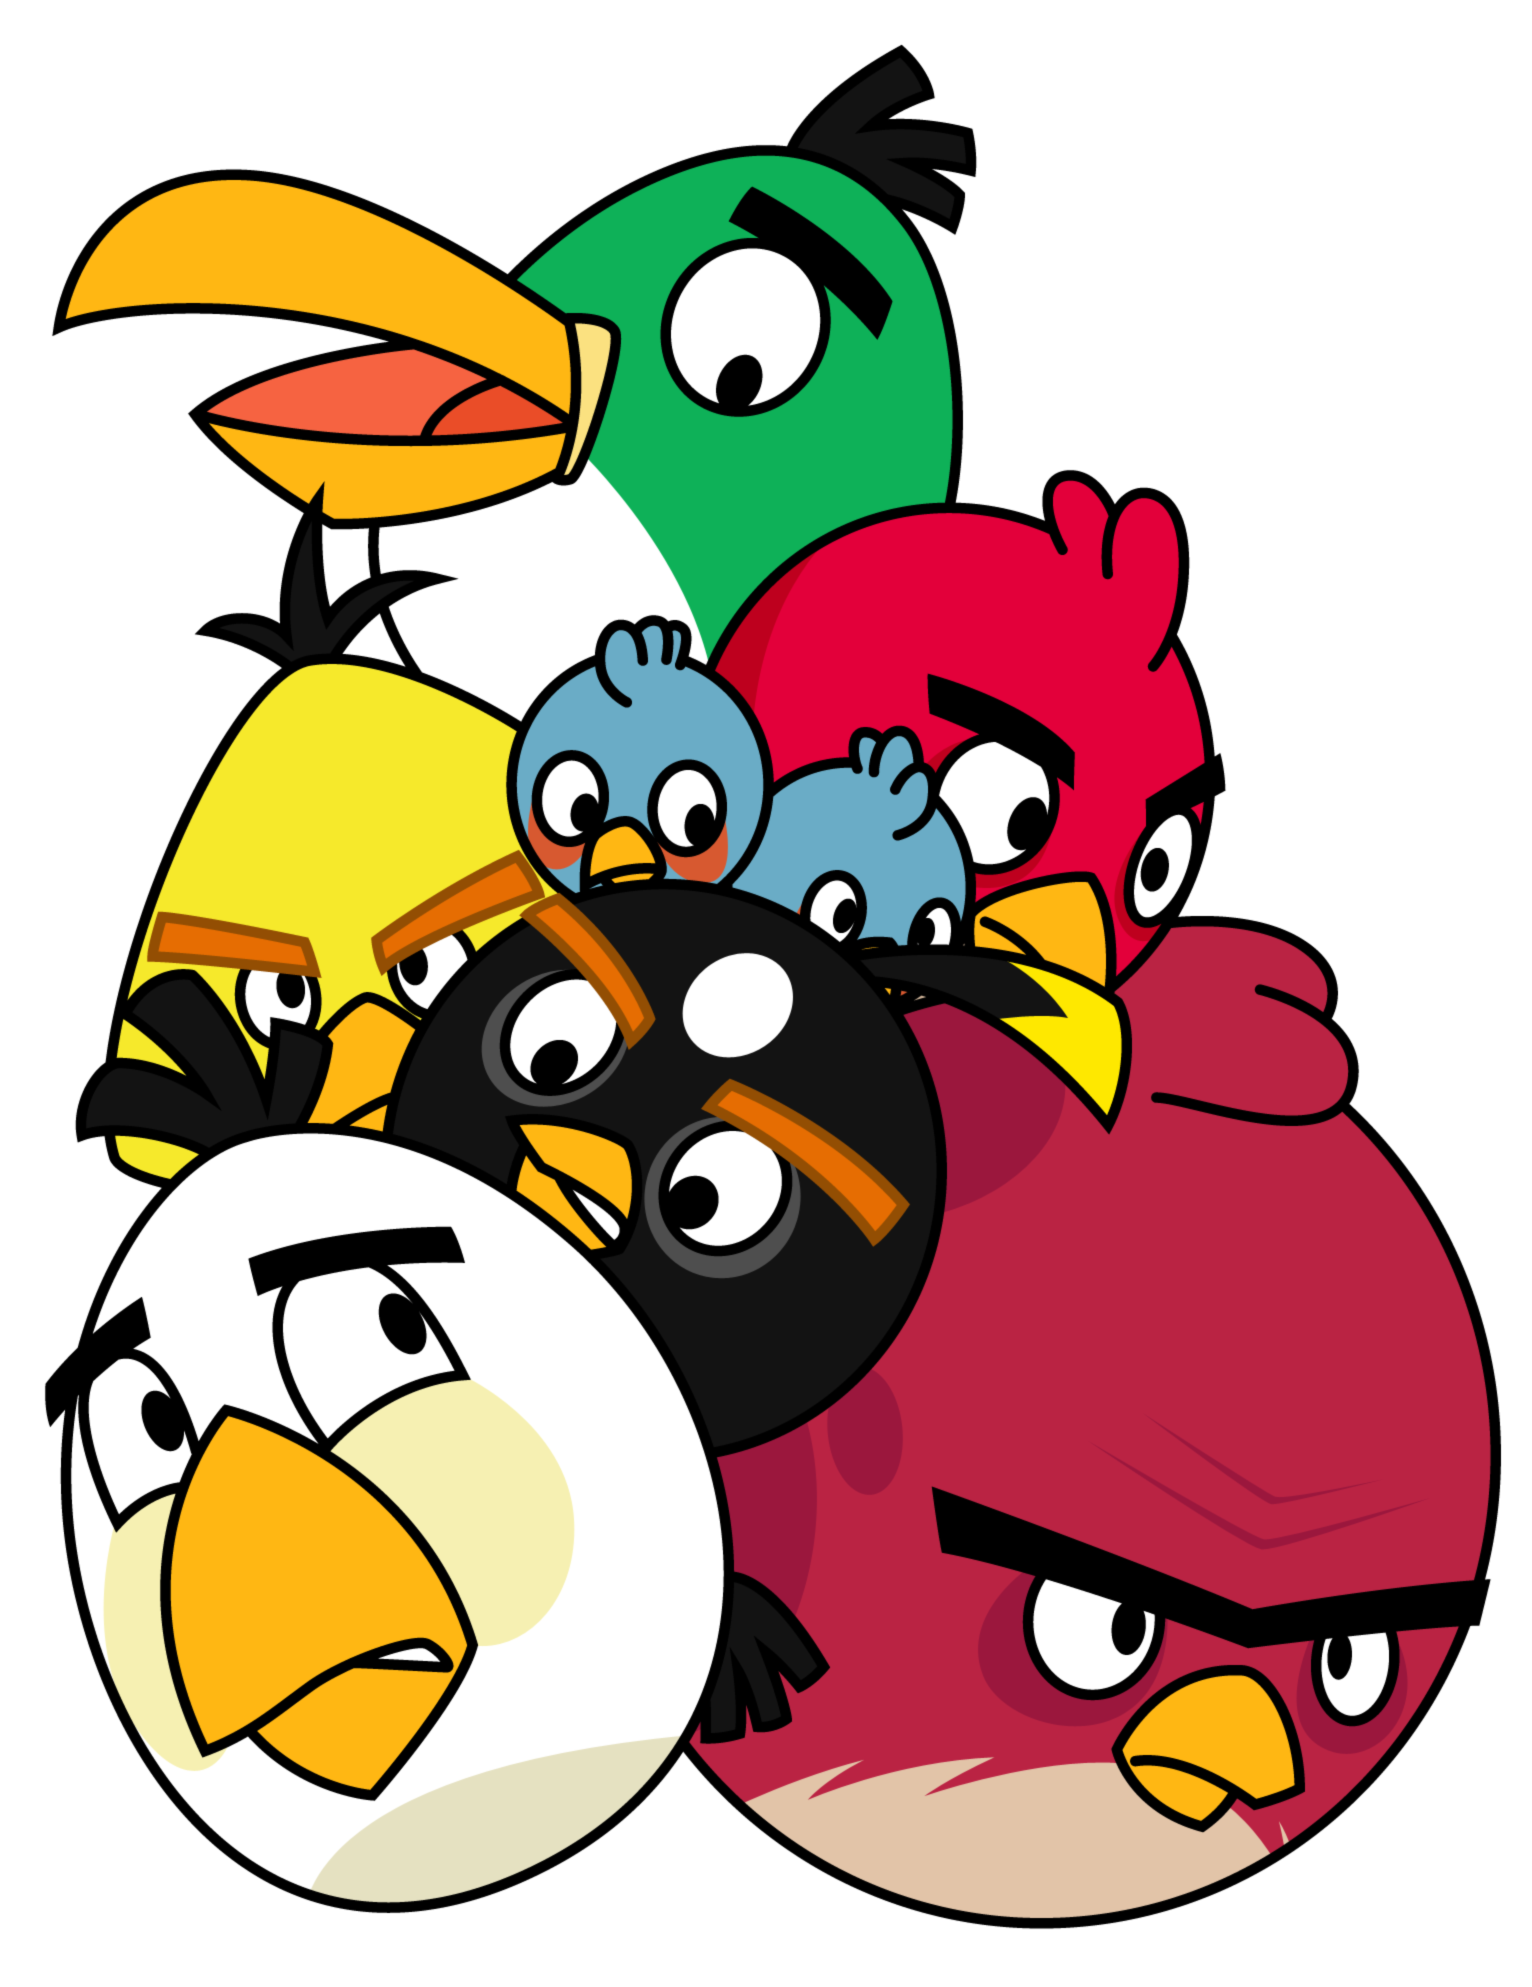 High quality Angry Birds Transparent Png Images